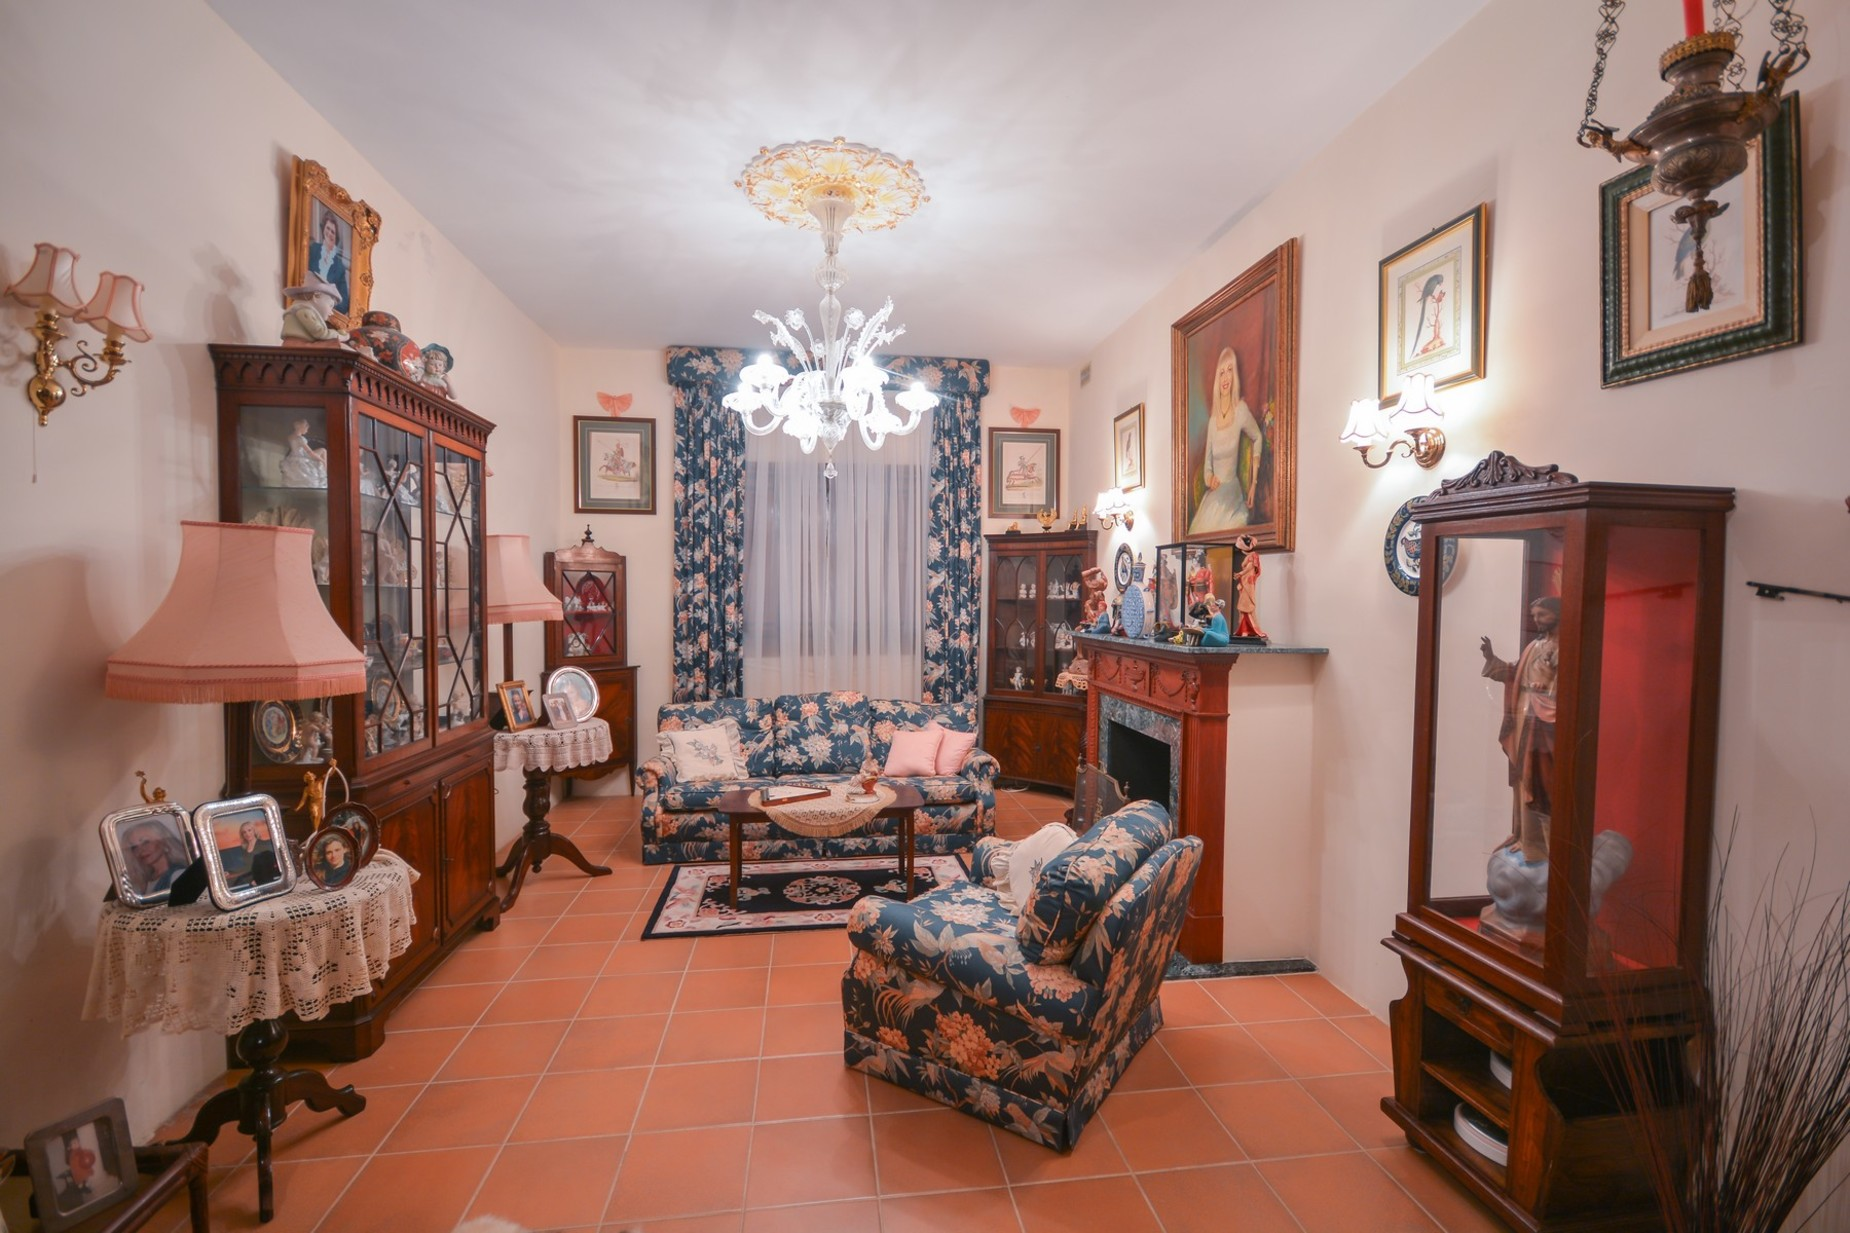 10 bed Villa For Sale in Madliena, Madliena - thumb 6